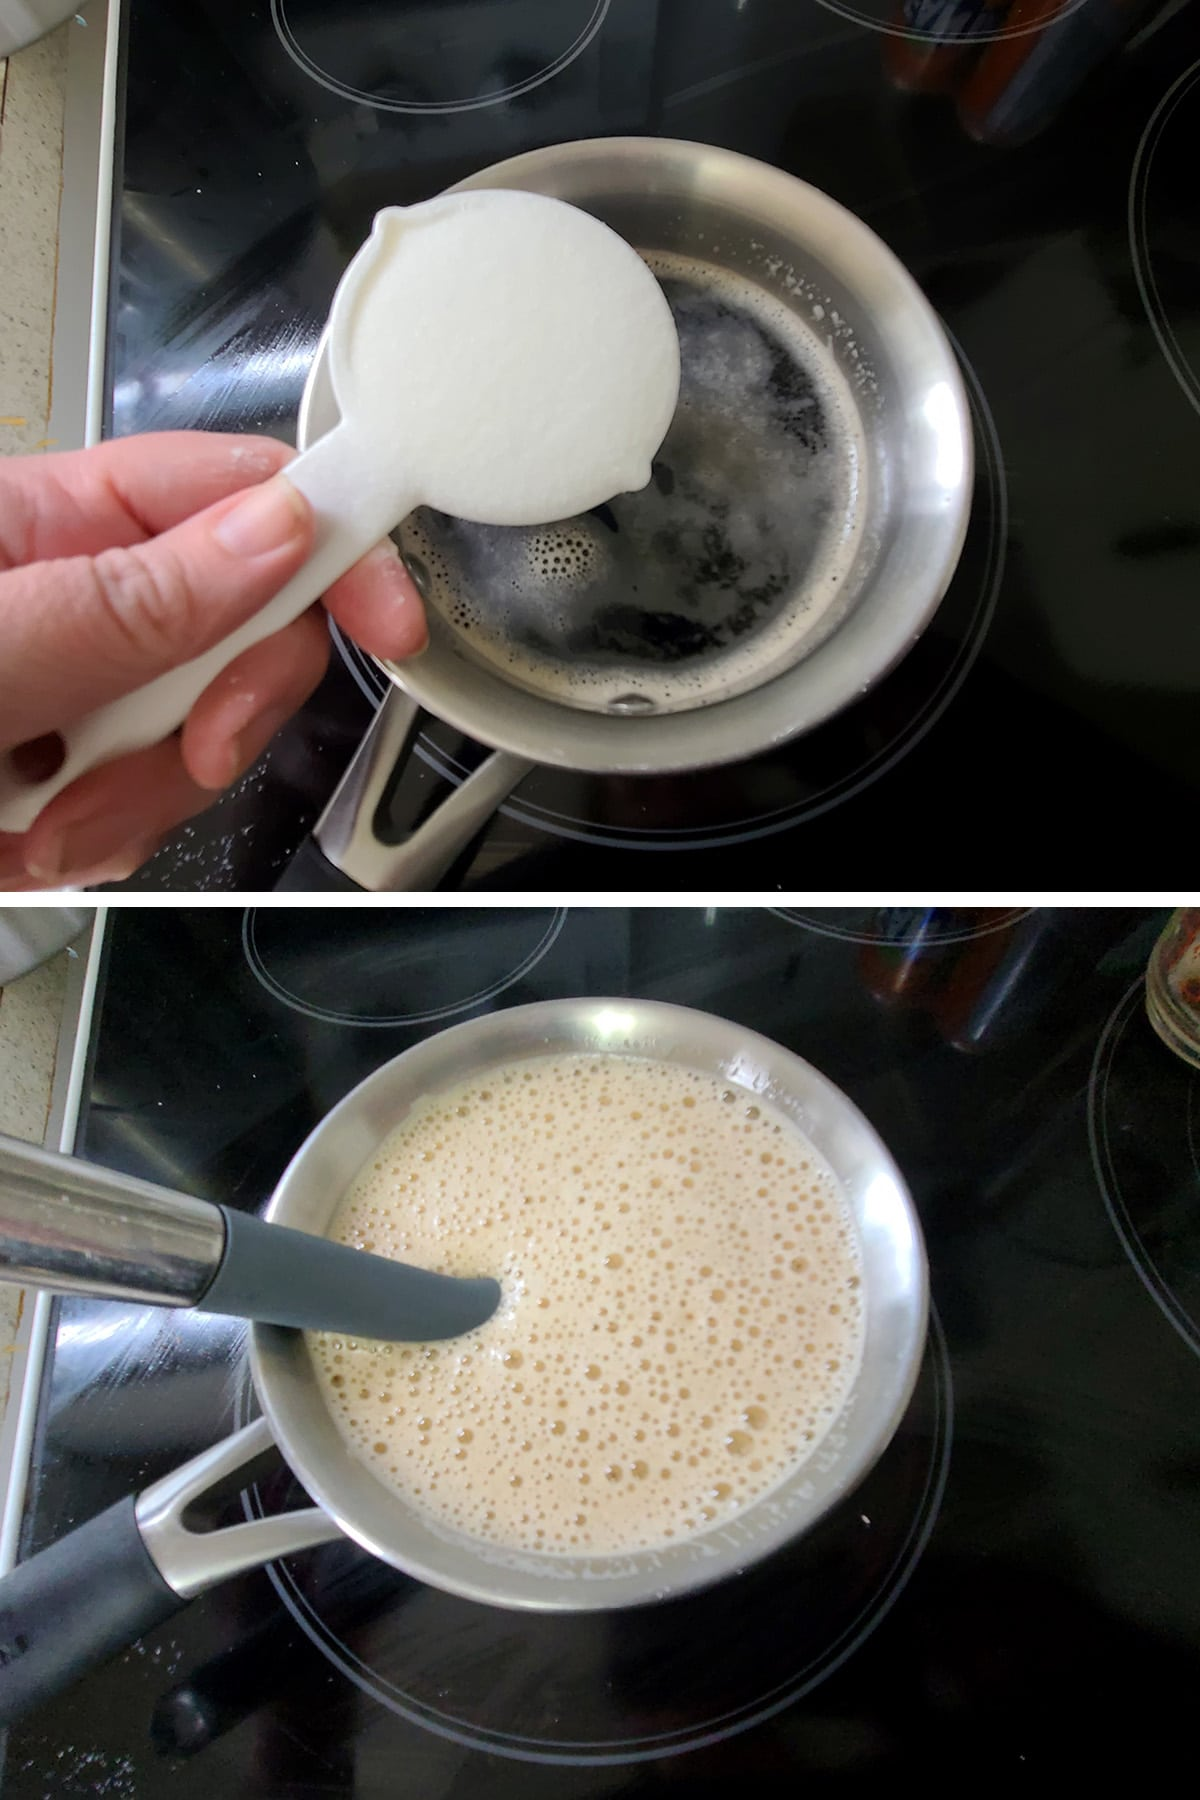 A two part image, showing sugar being added to a small pot of root beer, and the pot fizzing up after being stirred.